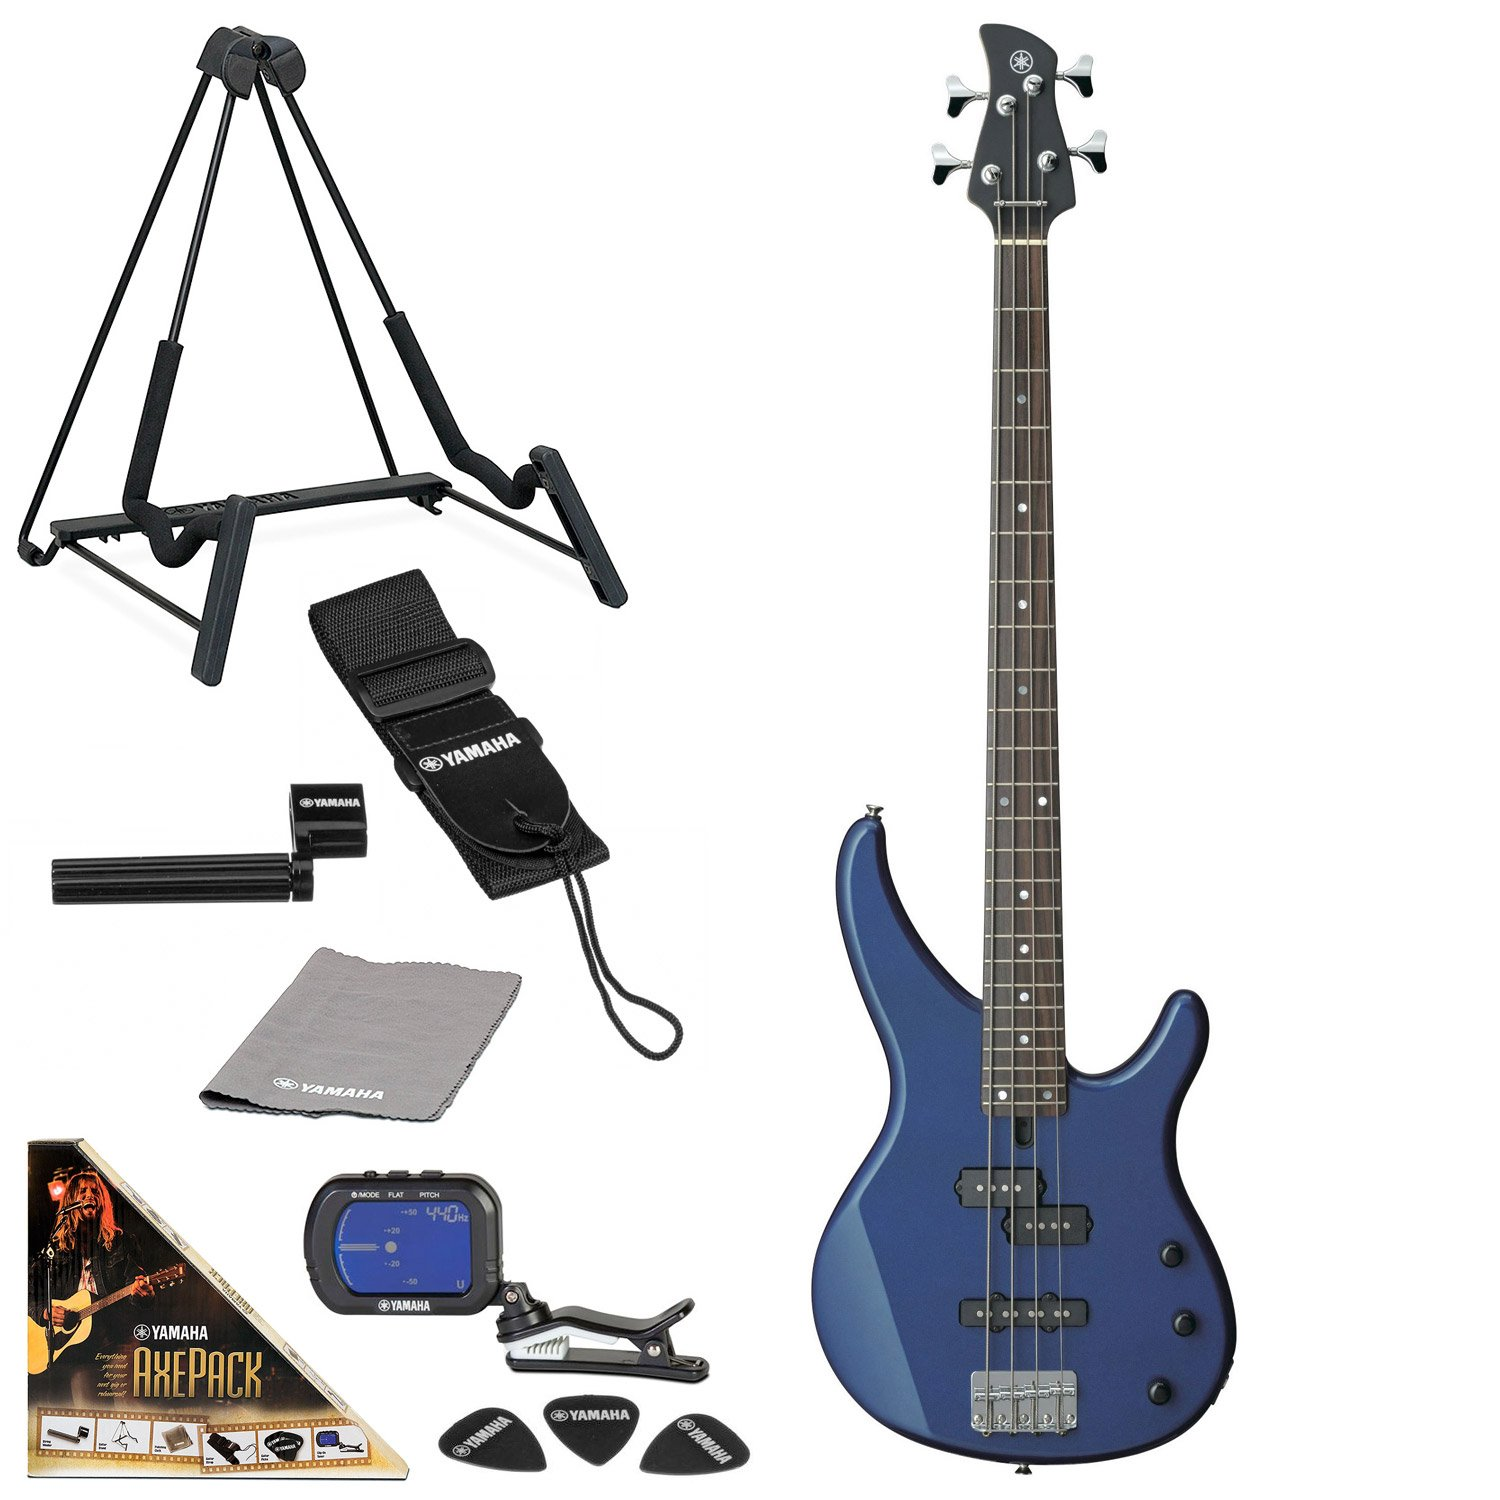 Cheap Yamaha TRBX174 Electric Bass Guitar Bundle with AxePack Accessory Pack (Metallic Blue) Black Friday & Cyber Monday 2019